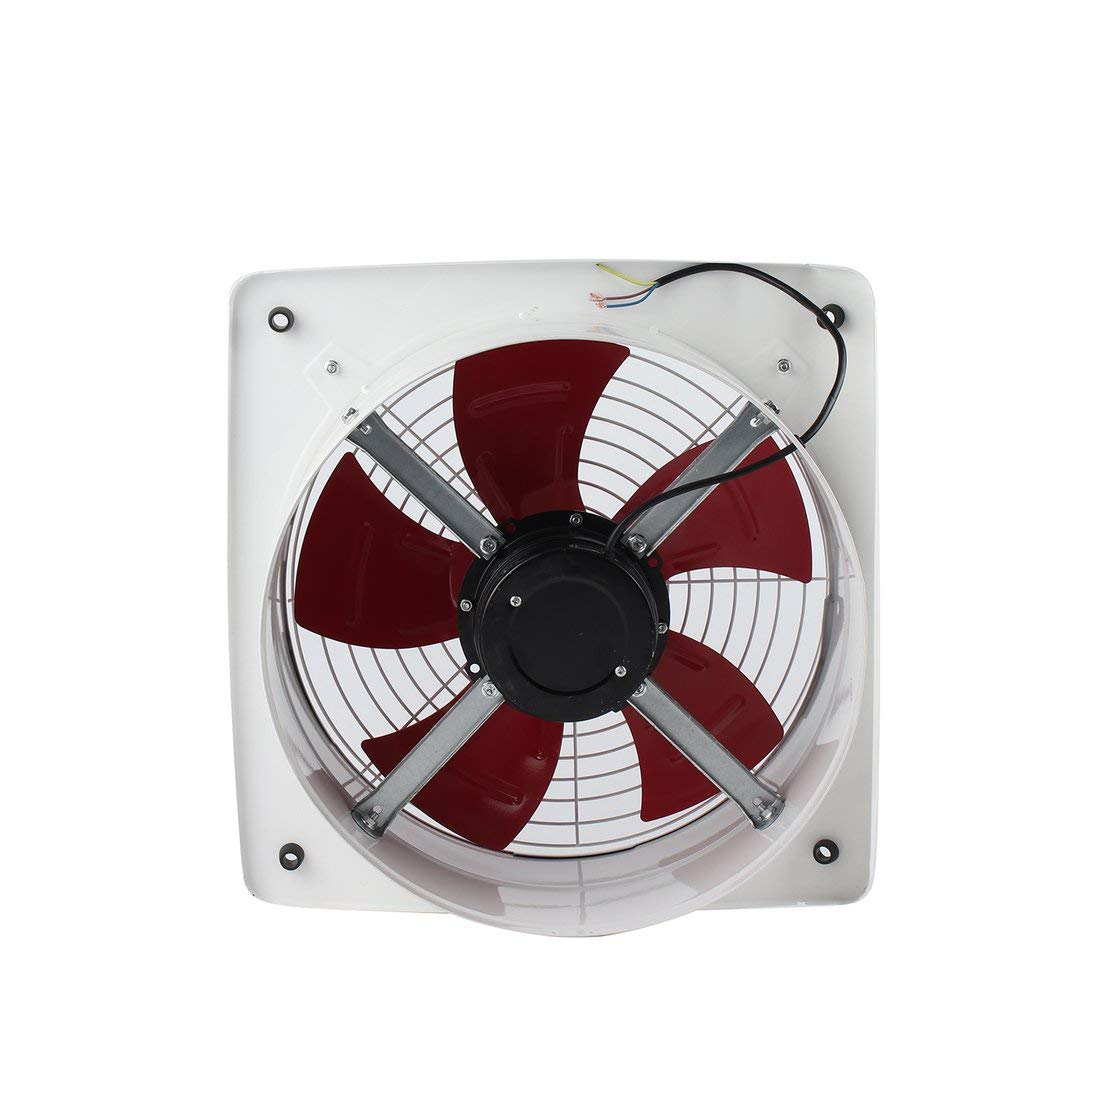 Baynne Blower Fan,Industrial Ventilation Extractor Metal Axial Exhaust Commercial Air Blower Fan Low Noise Stable Running